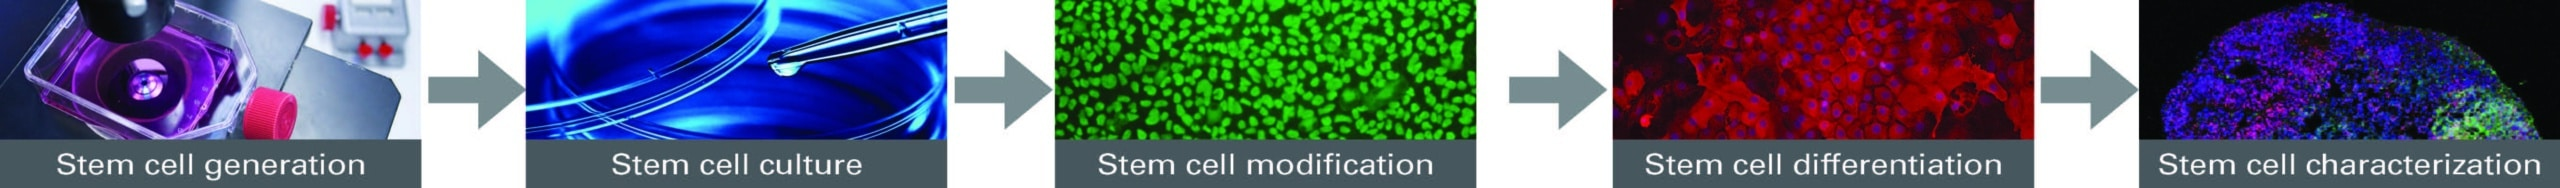 Stem Cell research workflow